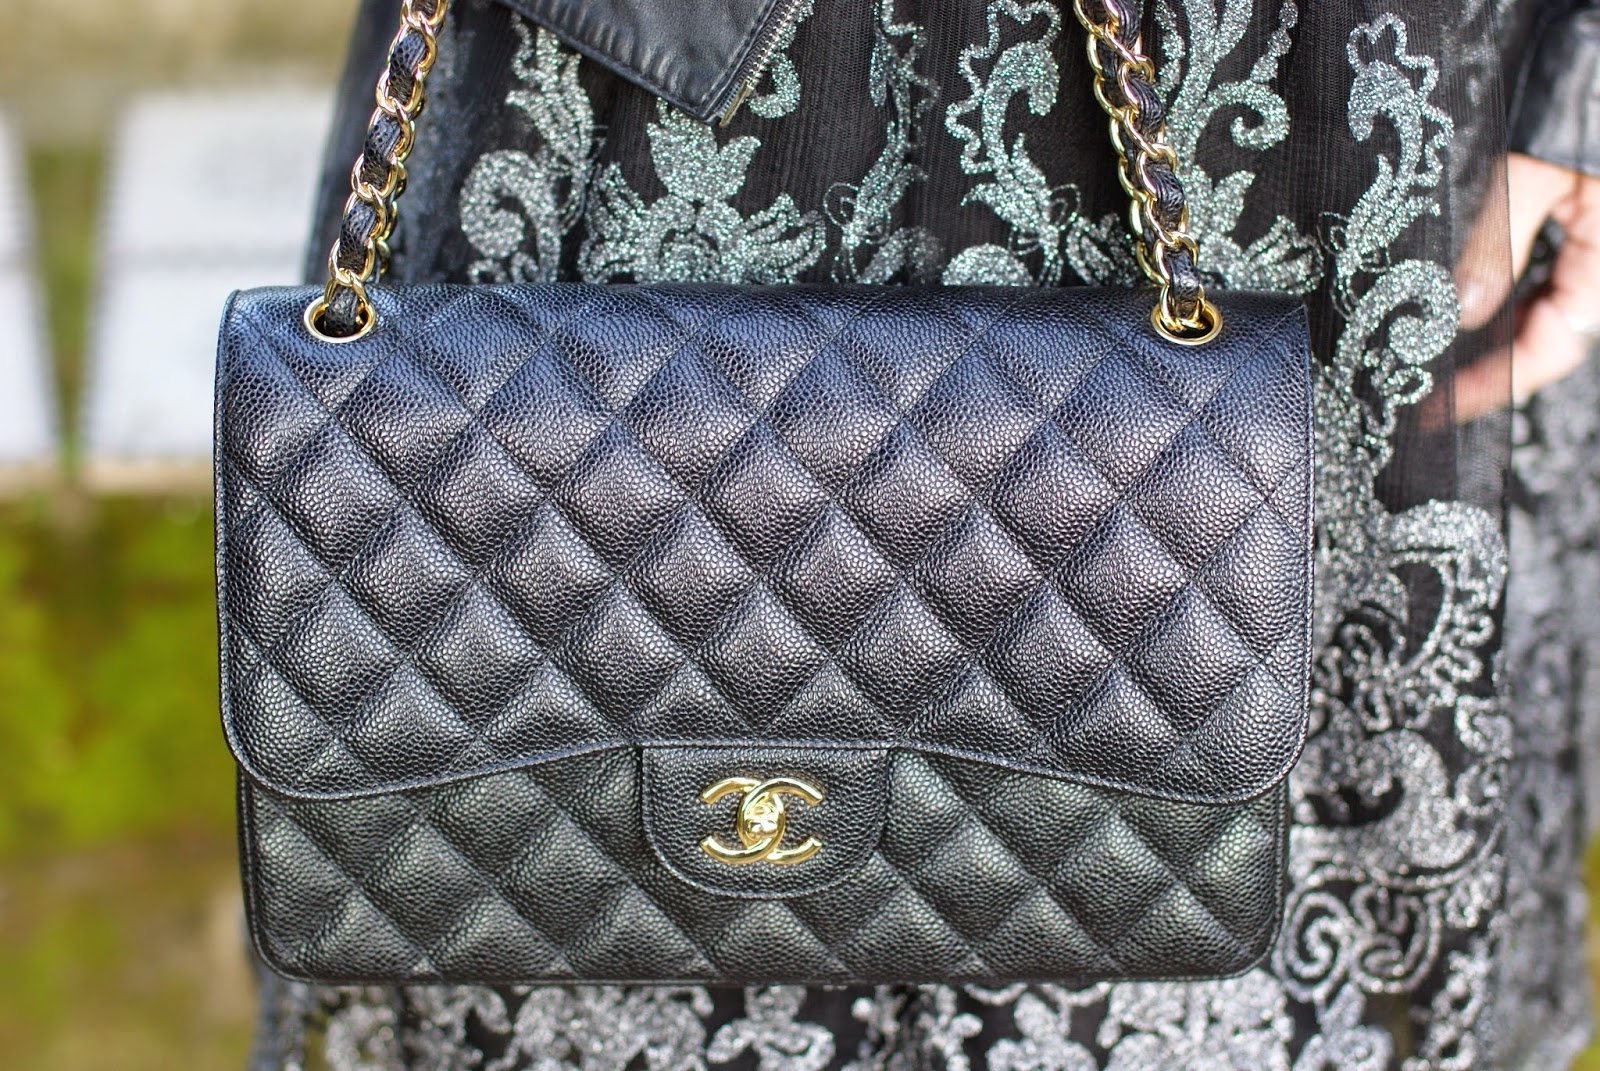 Chanel classic flap bag, Chanel caviar leather bag, Chanel 2.55 bag, Chanel gold hardware, Fashion and Cookies, fashion blog, fashion blogger